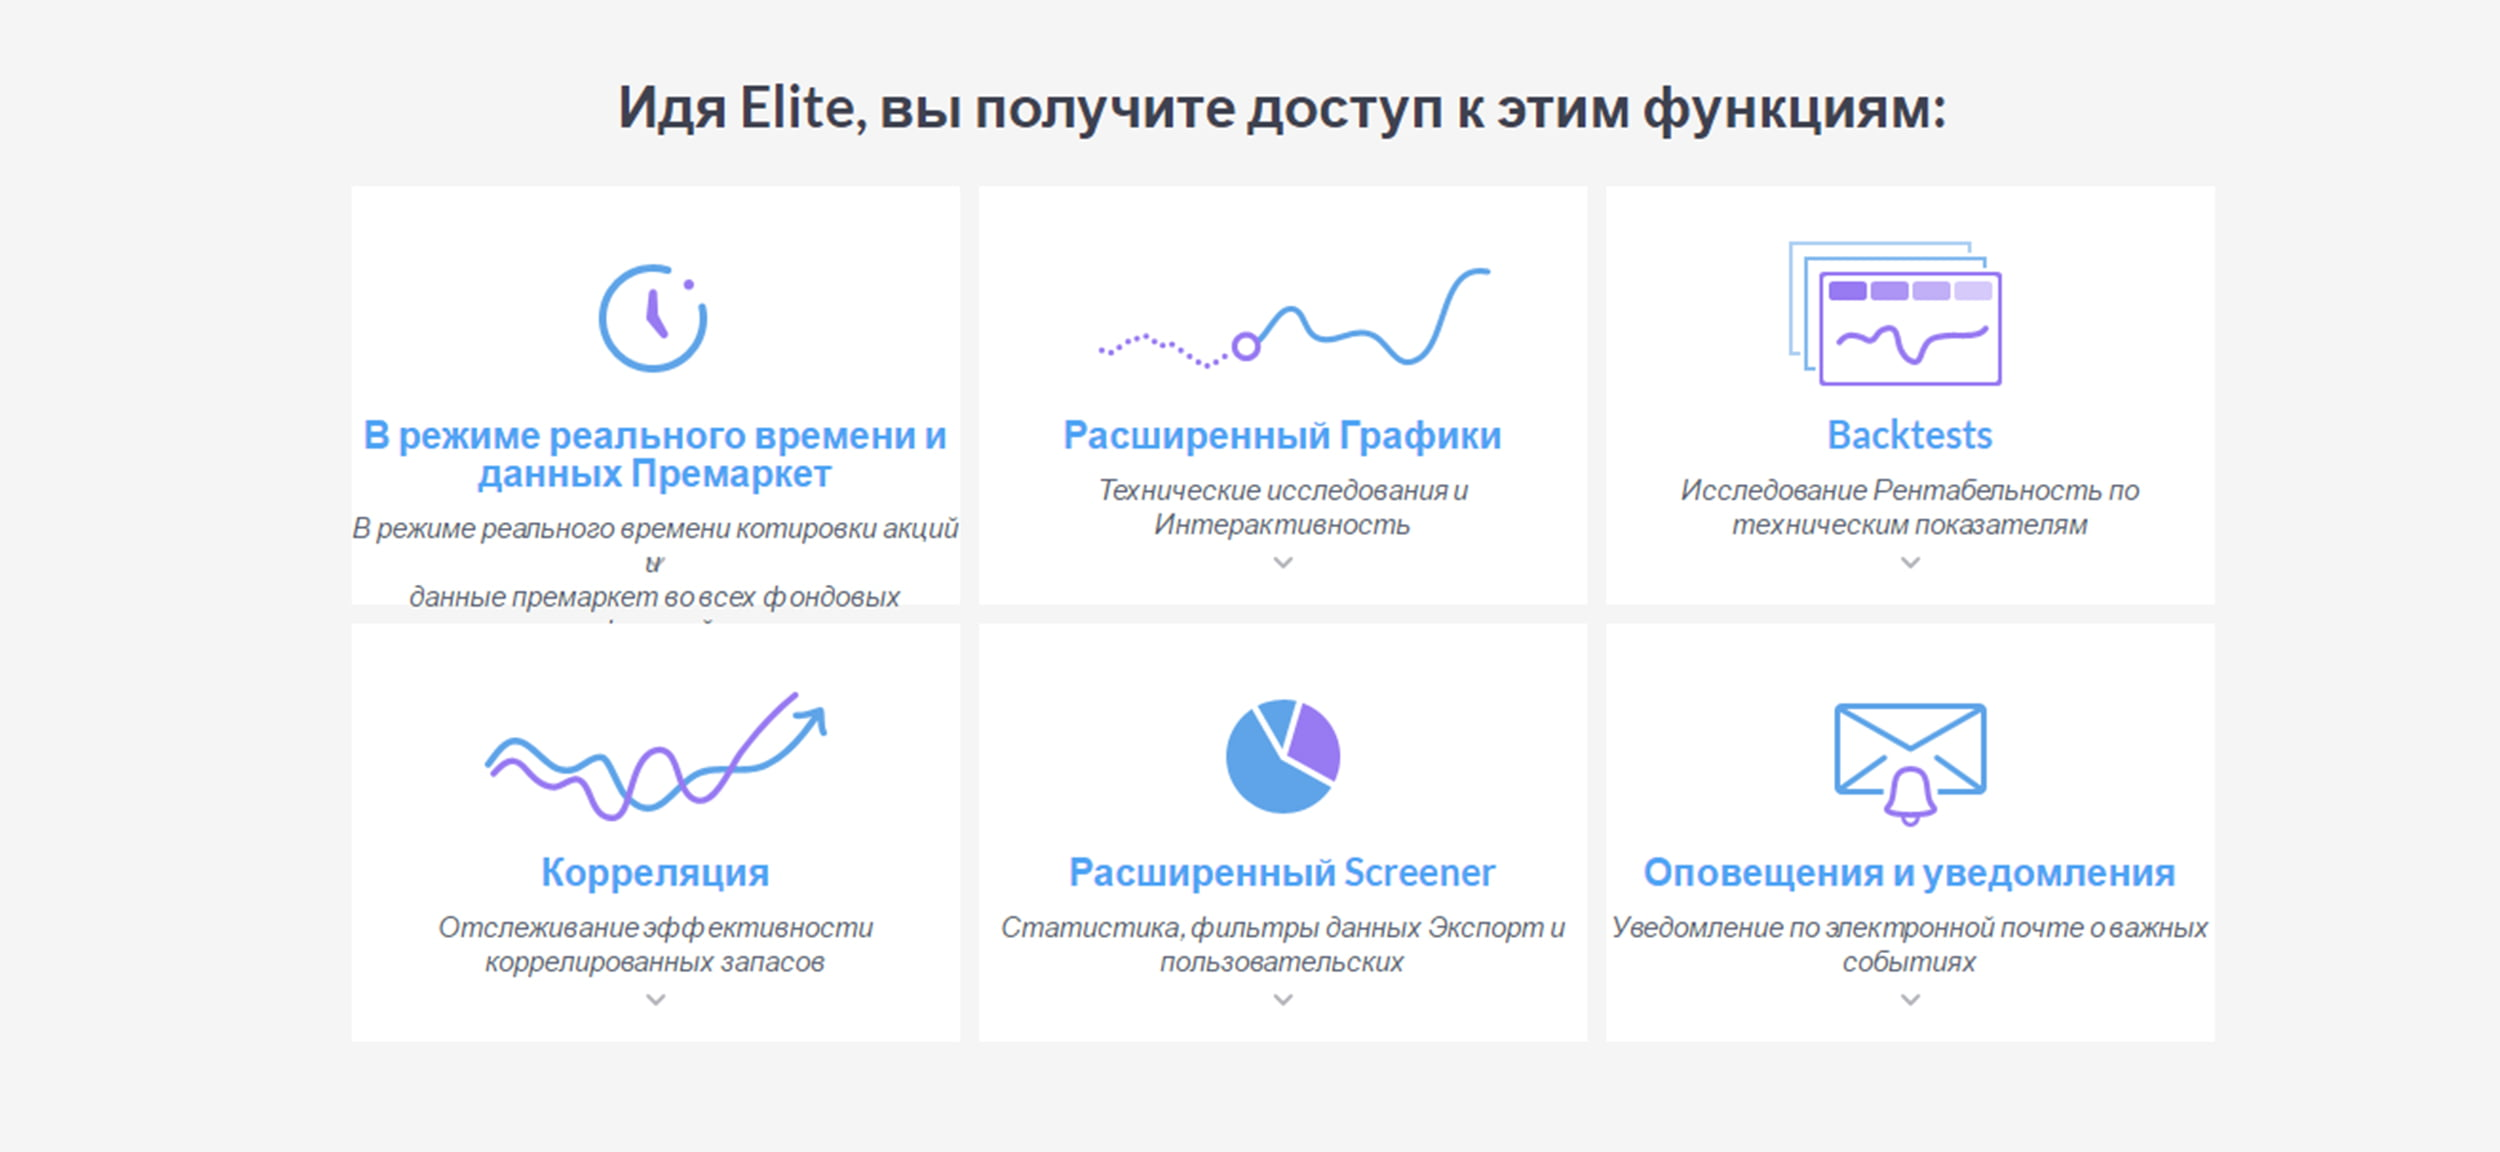 Backtests и Elite на finviz.com